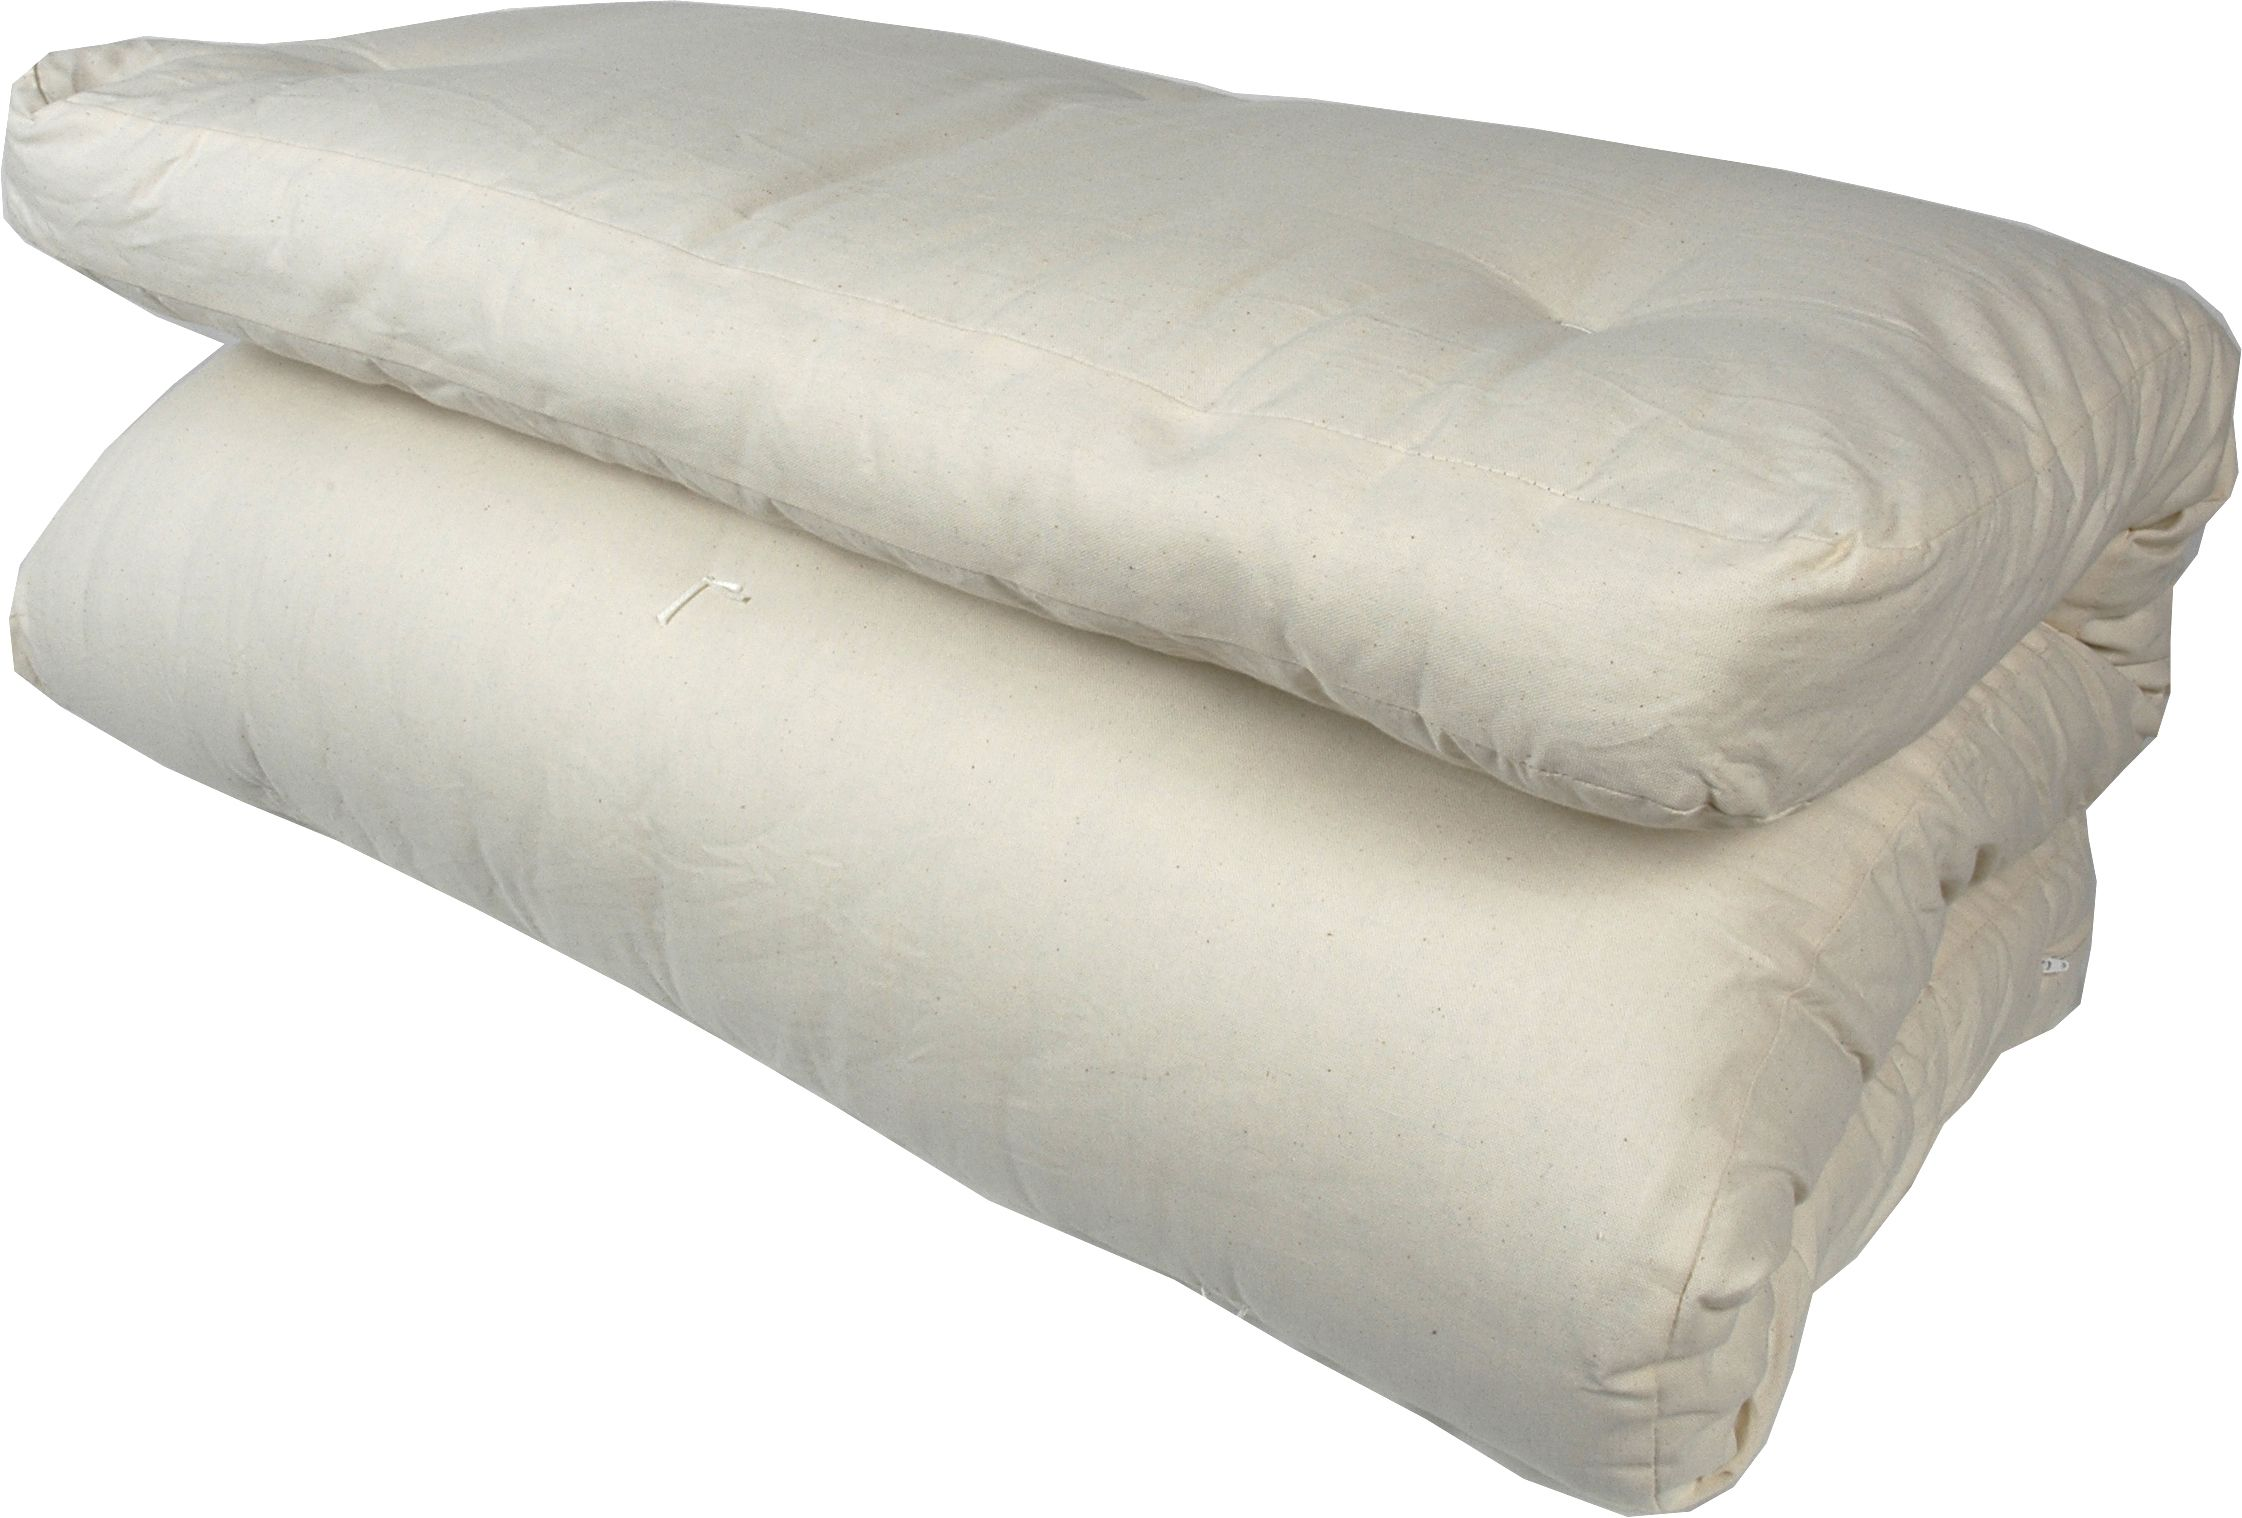 J Life Shikifuton Is A True Japanese Mattress Offering The Ultimate In Support There